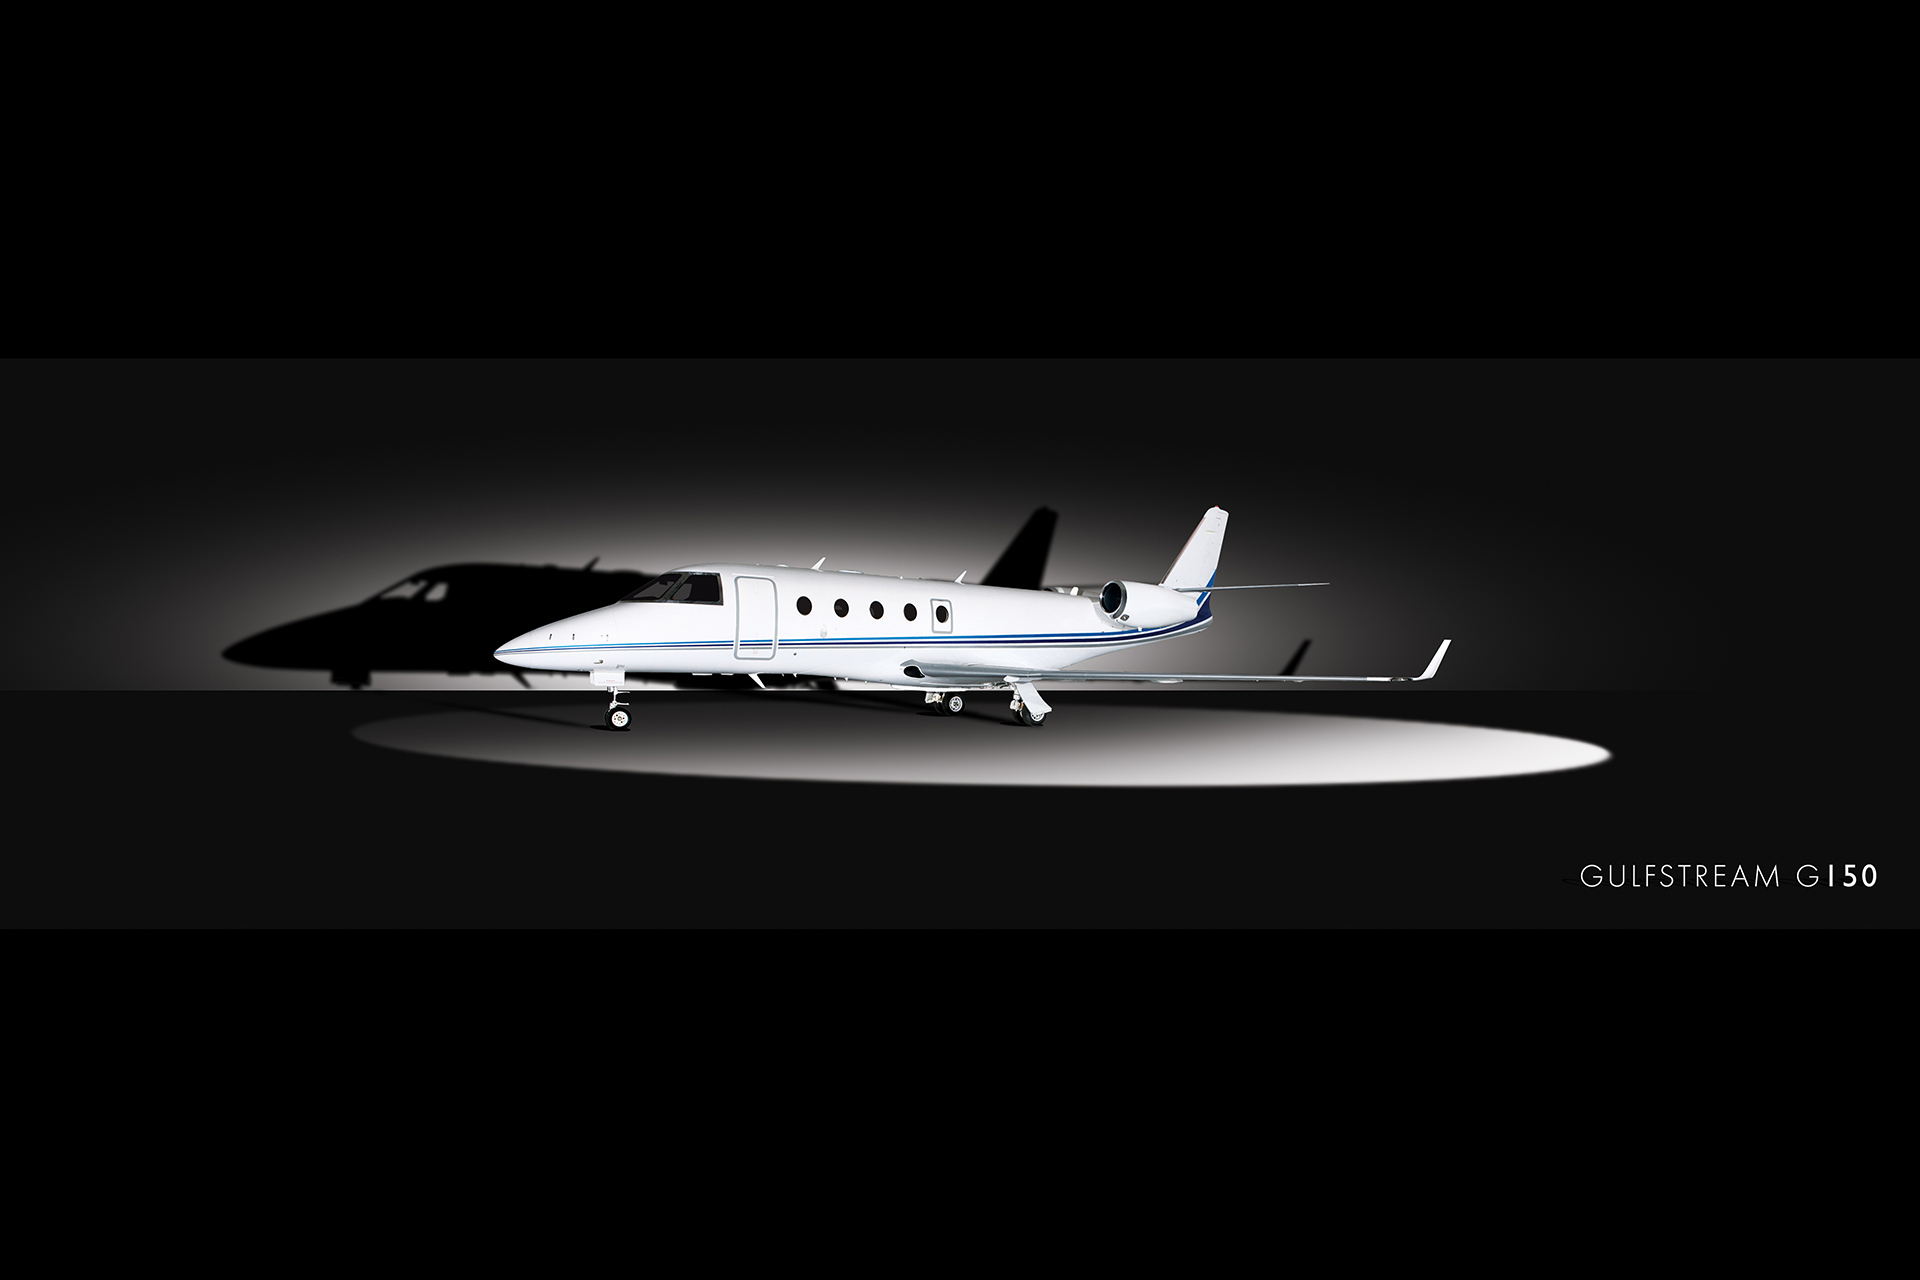 Private Jet Wallpaper Black And White  Wwwpixshark